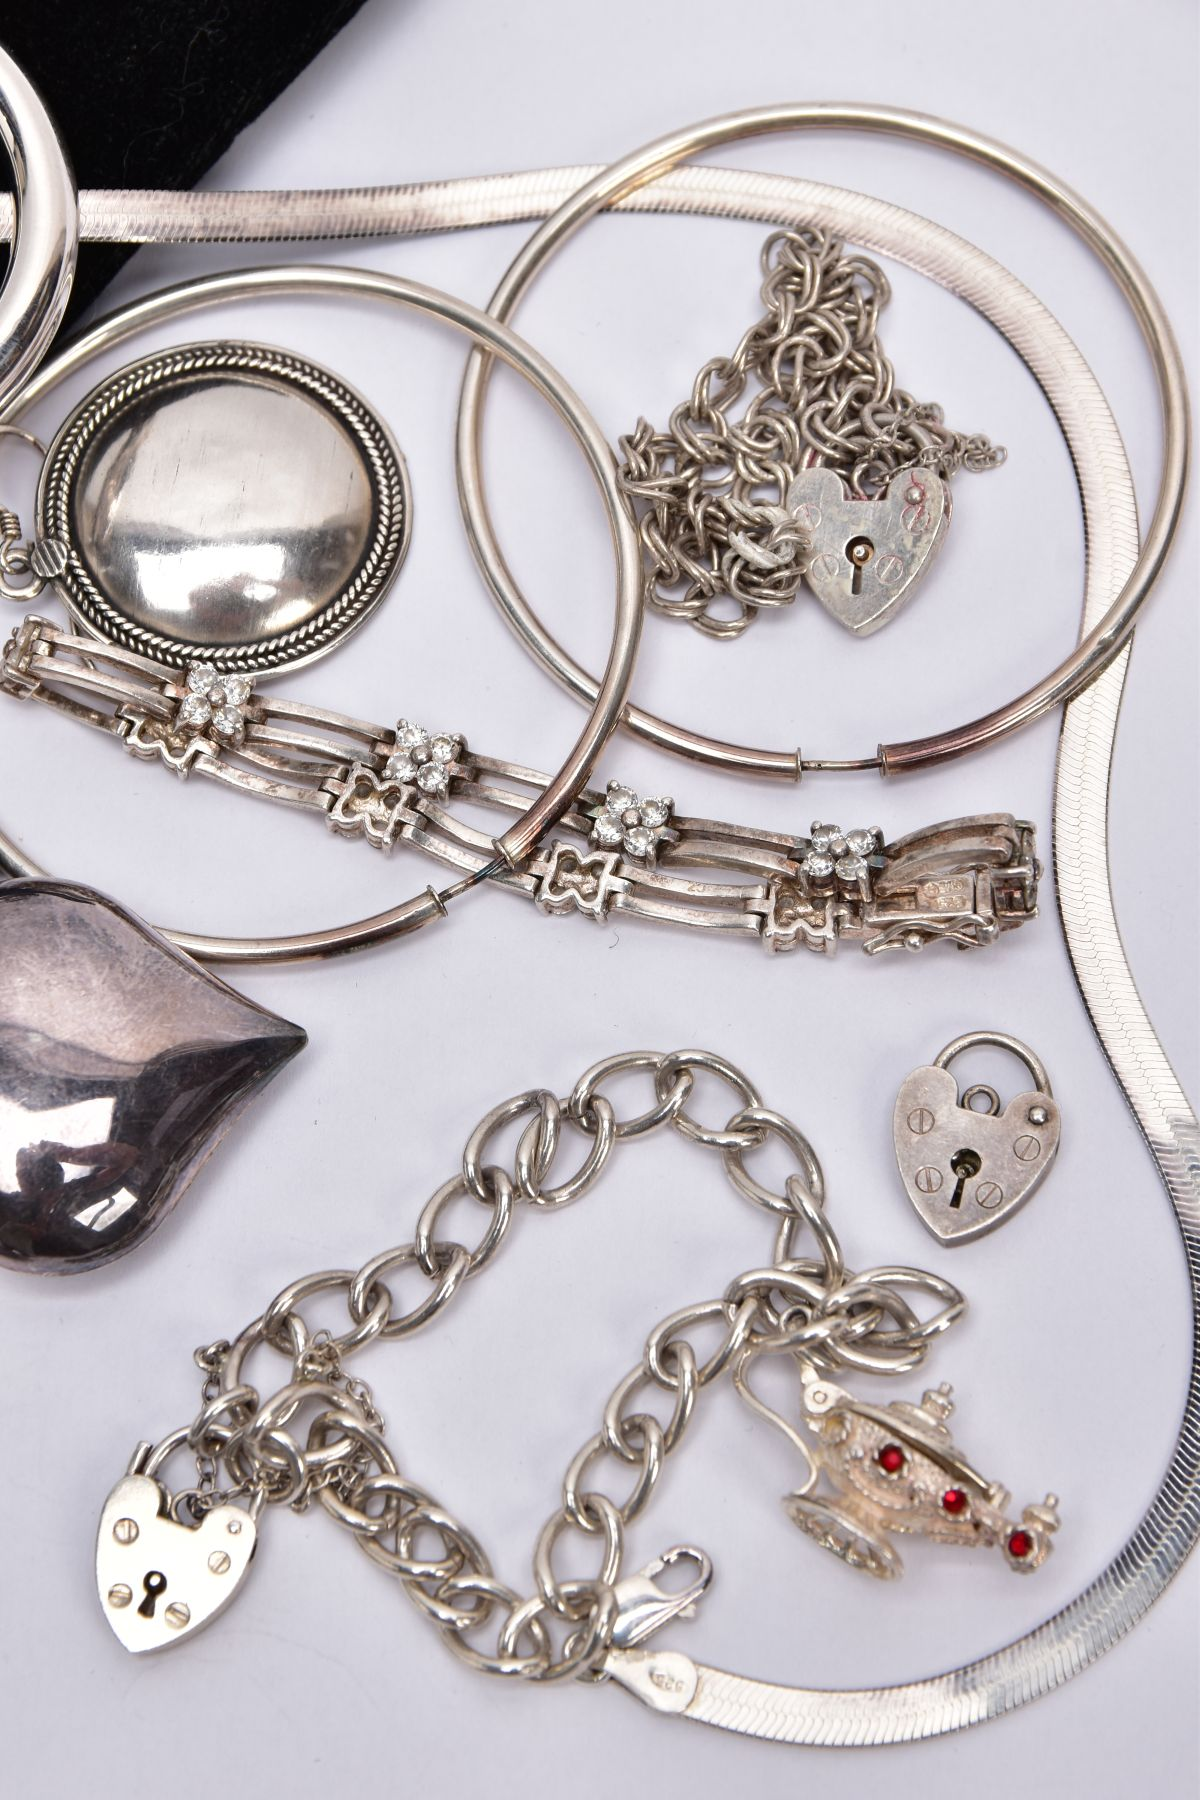 A BAG OF ASSORTED SILVER AND WHITE METAL JEWELLERY, to include a silver charm bracelet suspending - Image 3 of 5